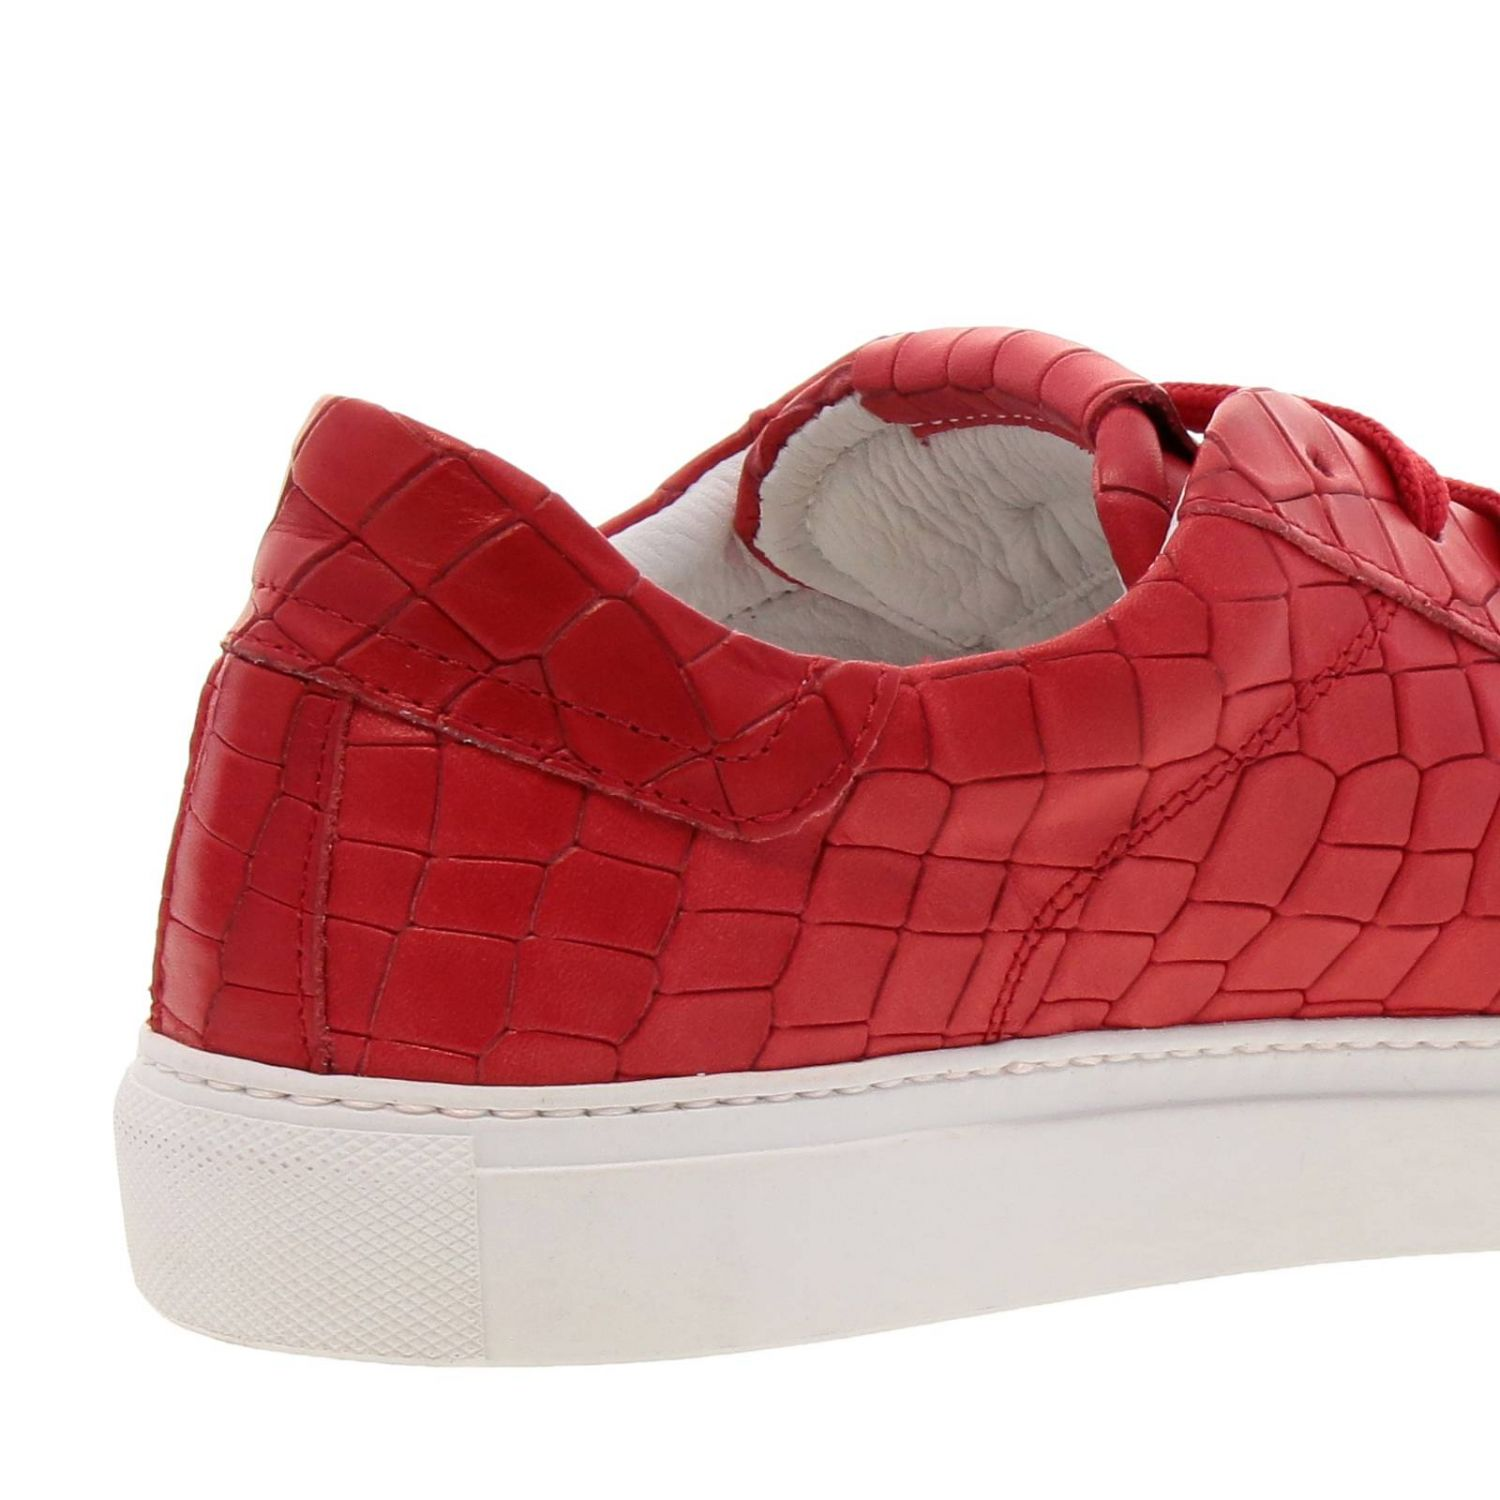 Chaussures homme Hide & Jack rouge 4